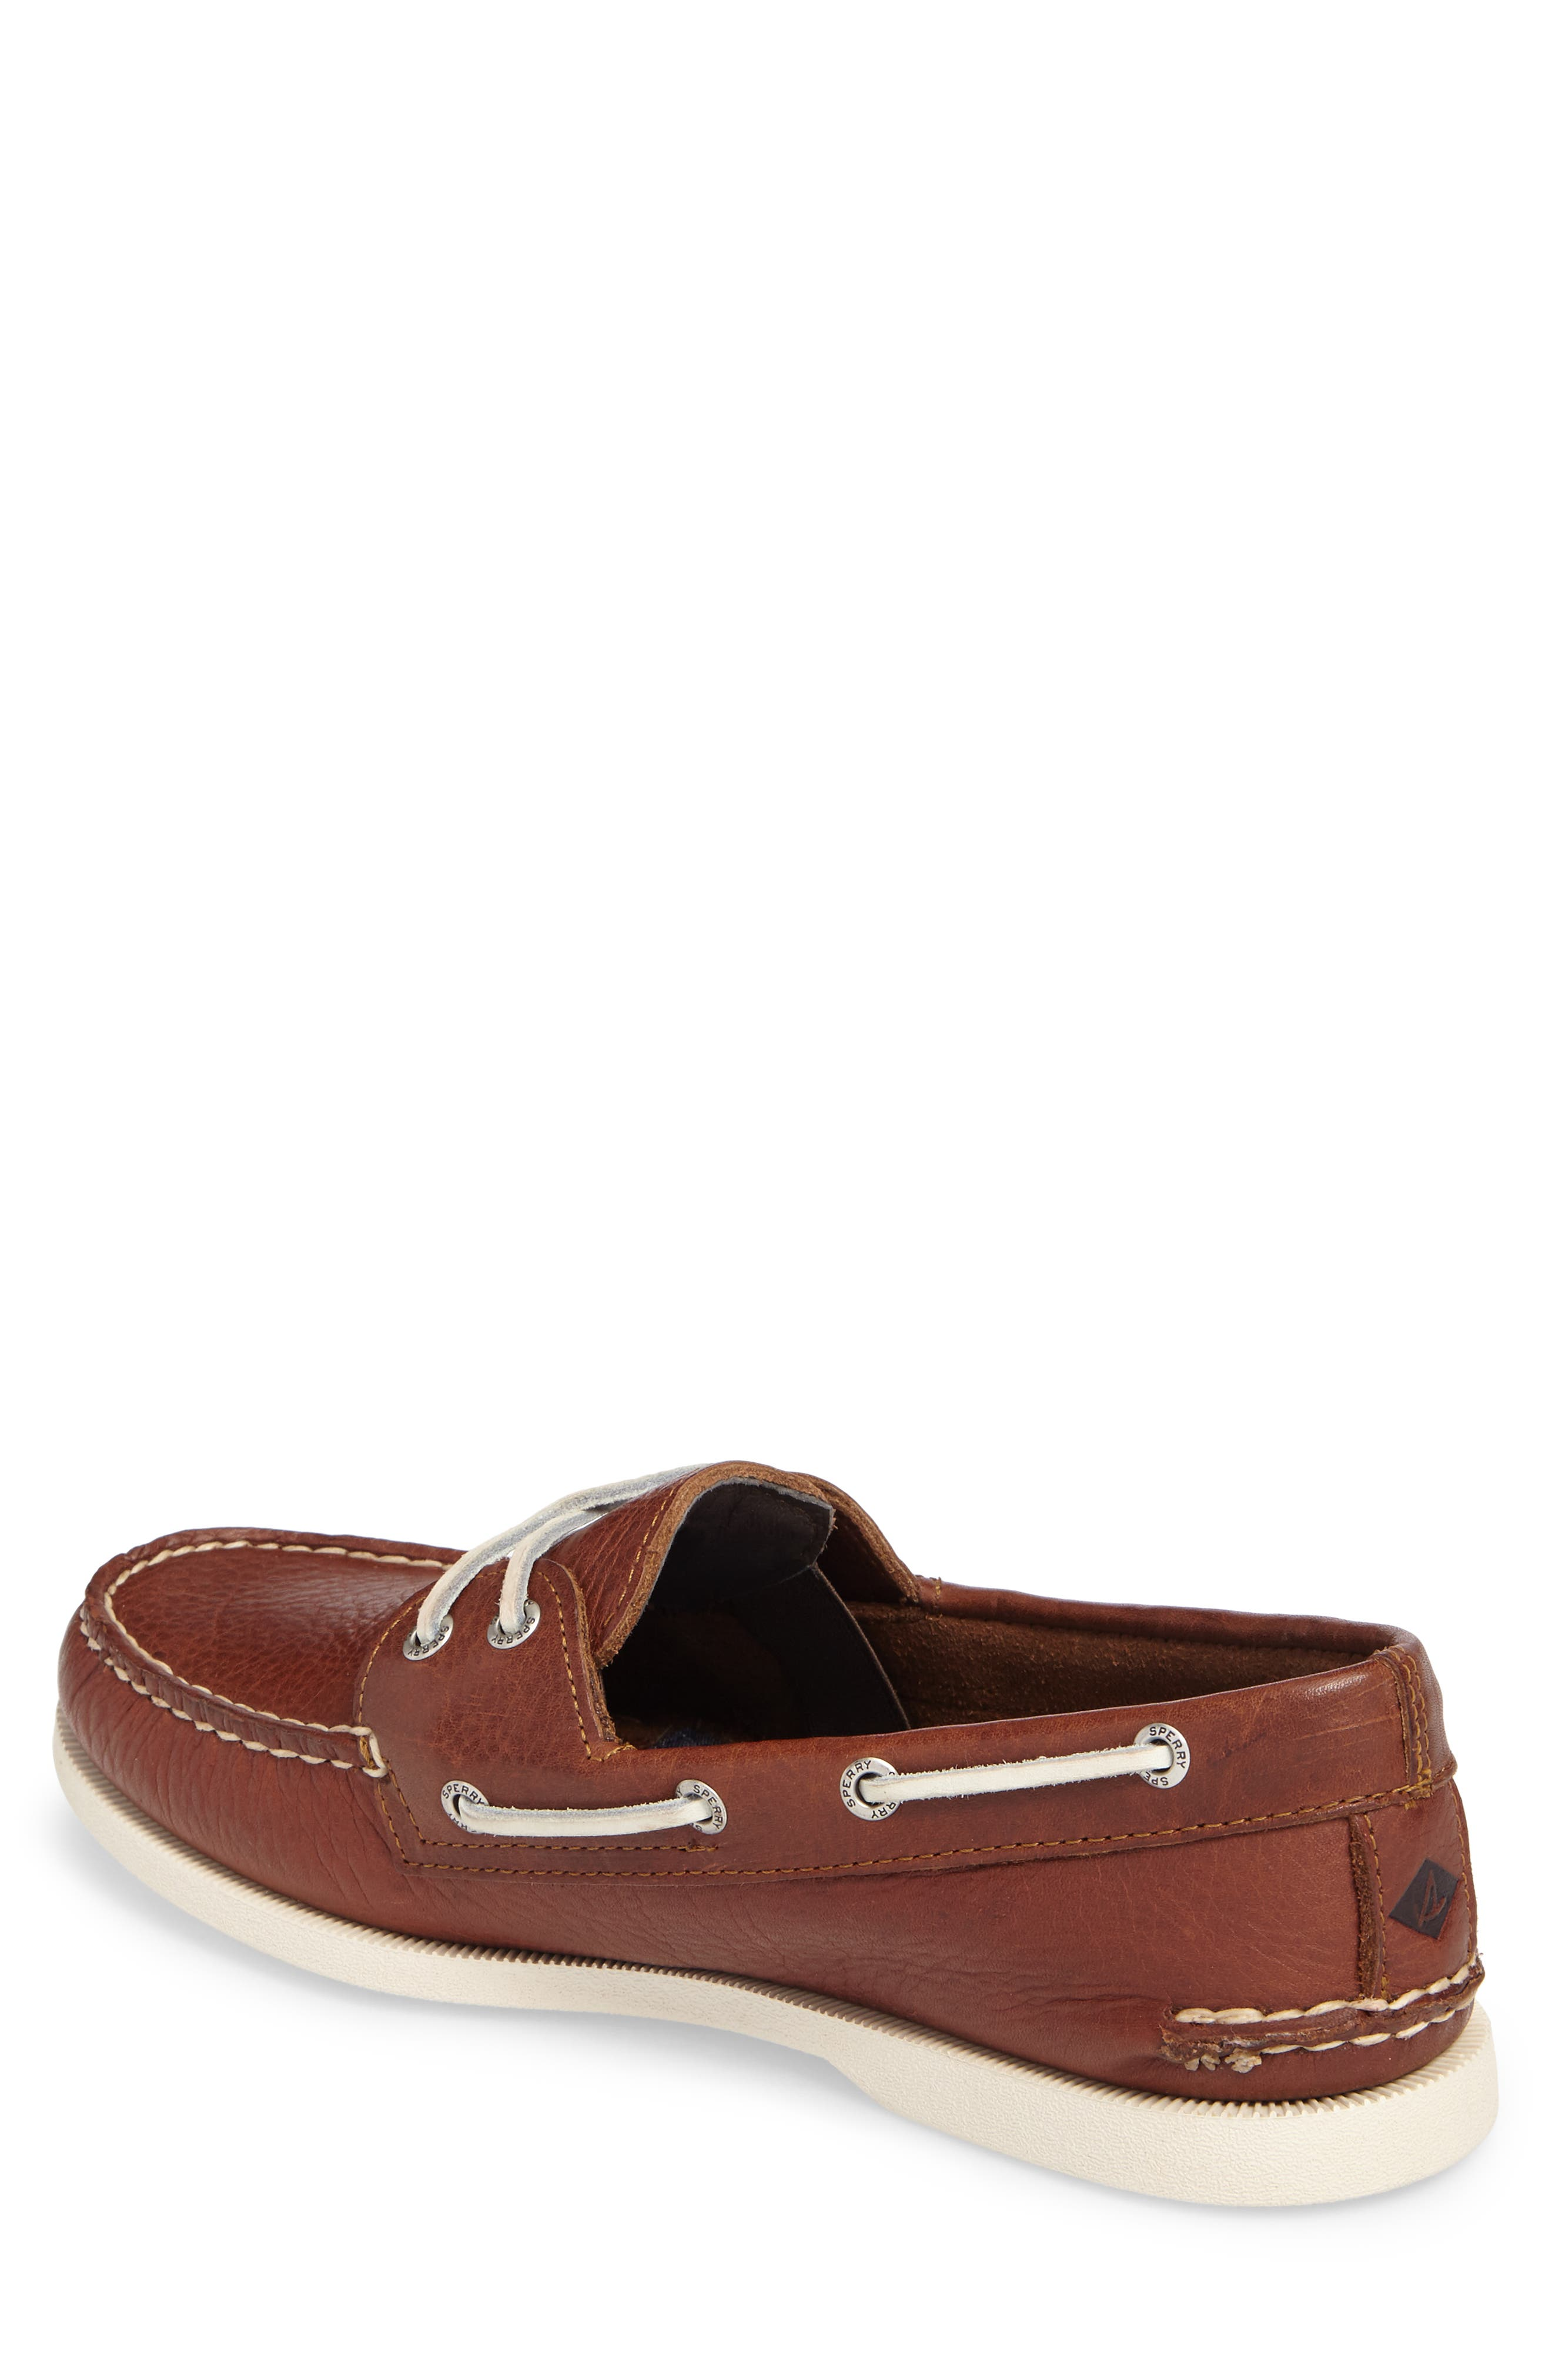 Authentic Original Boat Shoe,                             Alternate thumbnail 2, color,                             Brown Leather